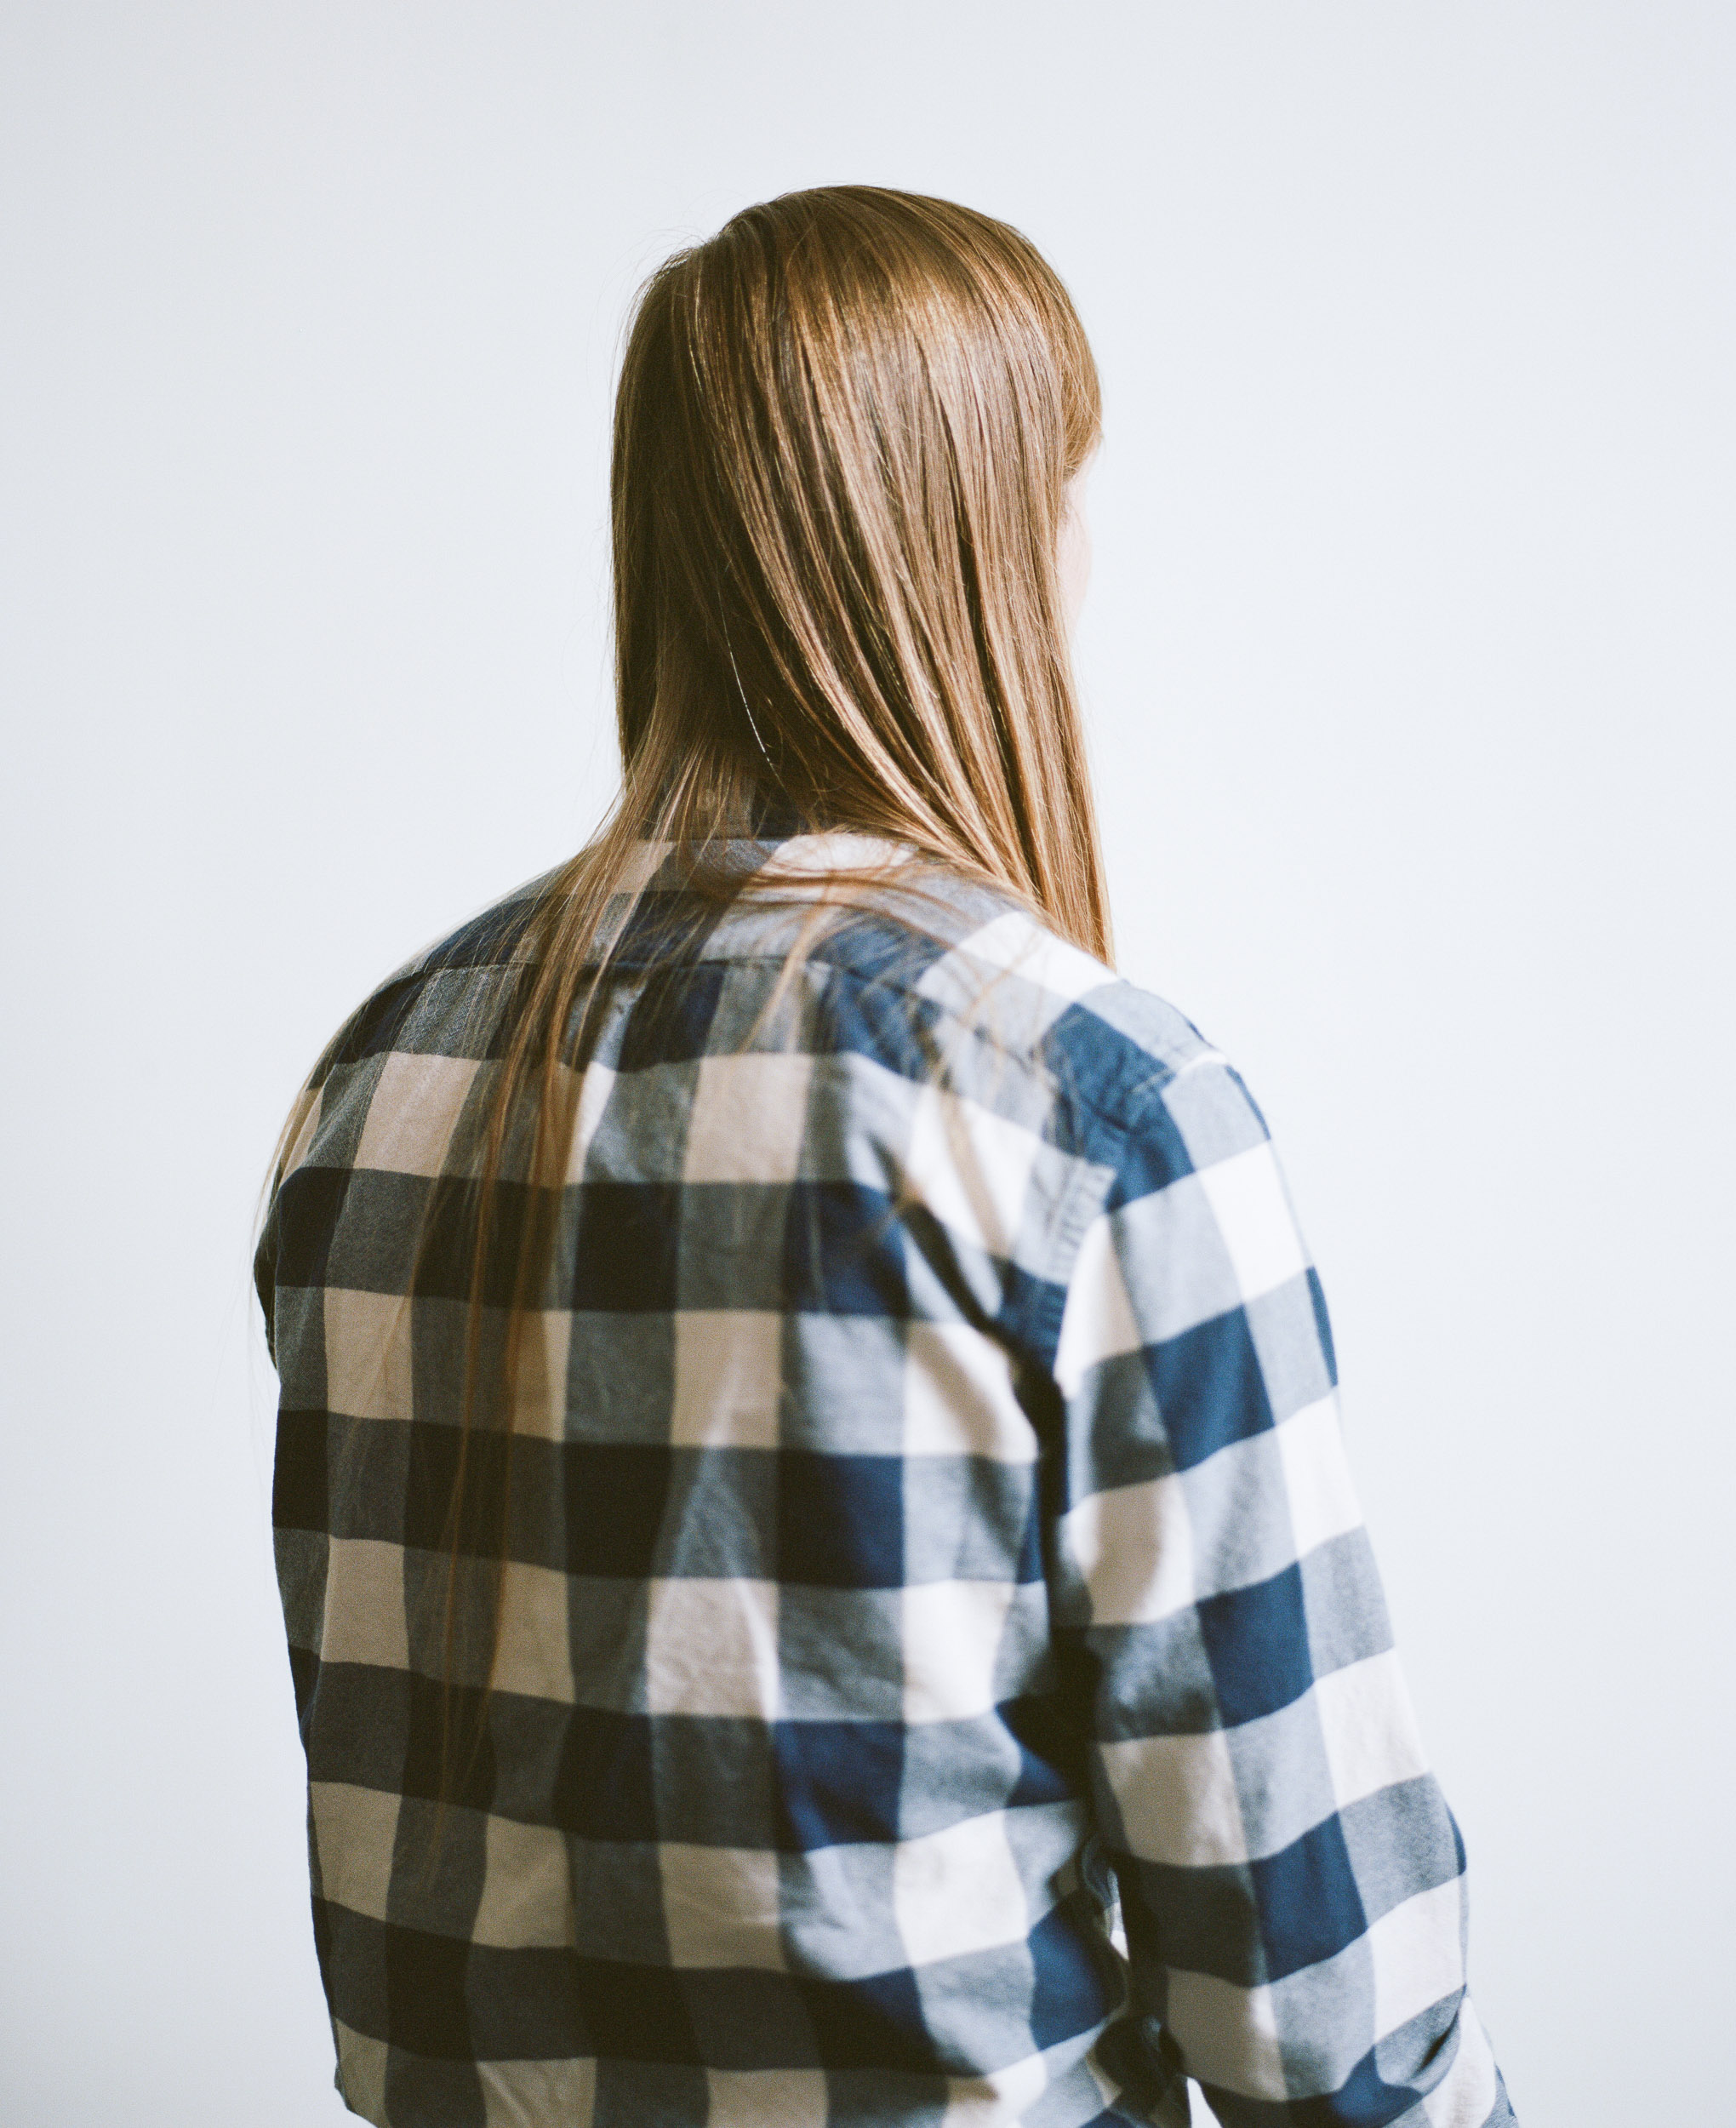 Young man with long blond hair in a blue and white plaid shirt